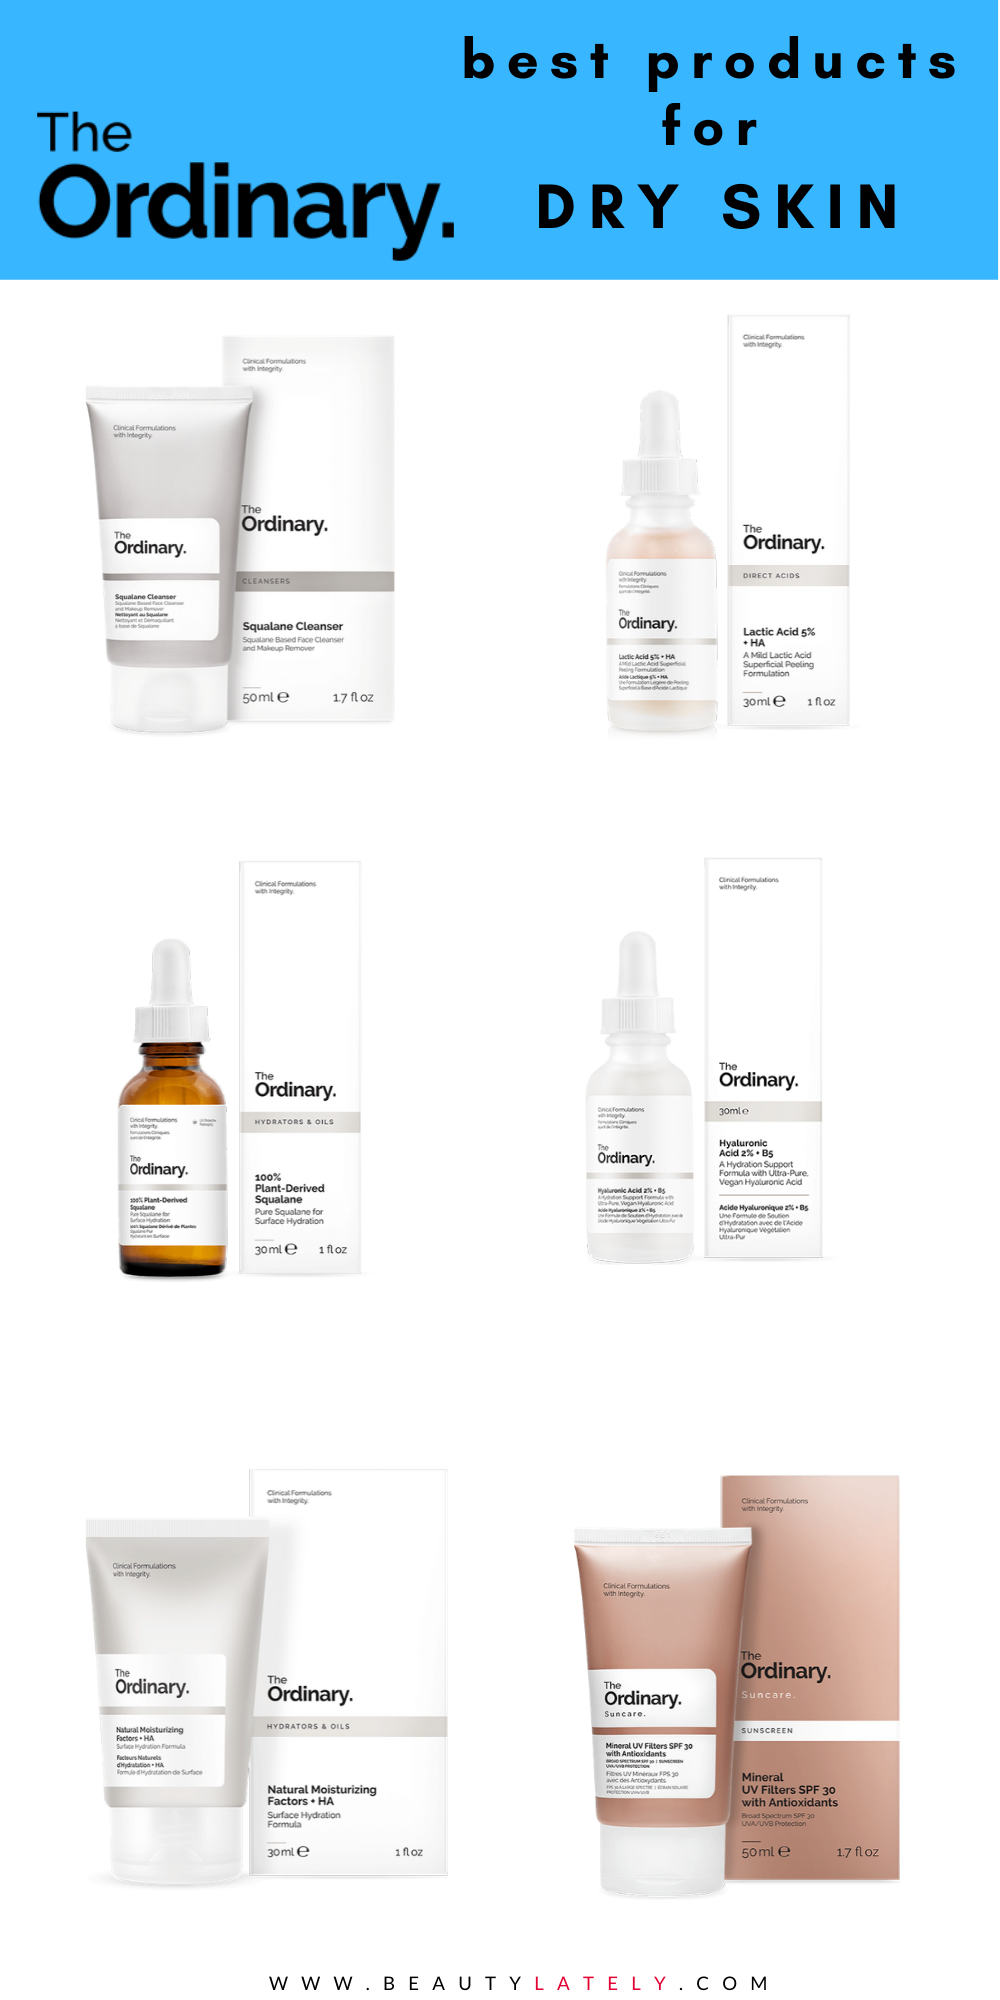 The Ordinary Shopping Guide For Dry Skin Dry Skin Routine Skin Routine Dry Skin On Face